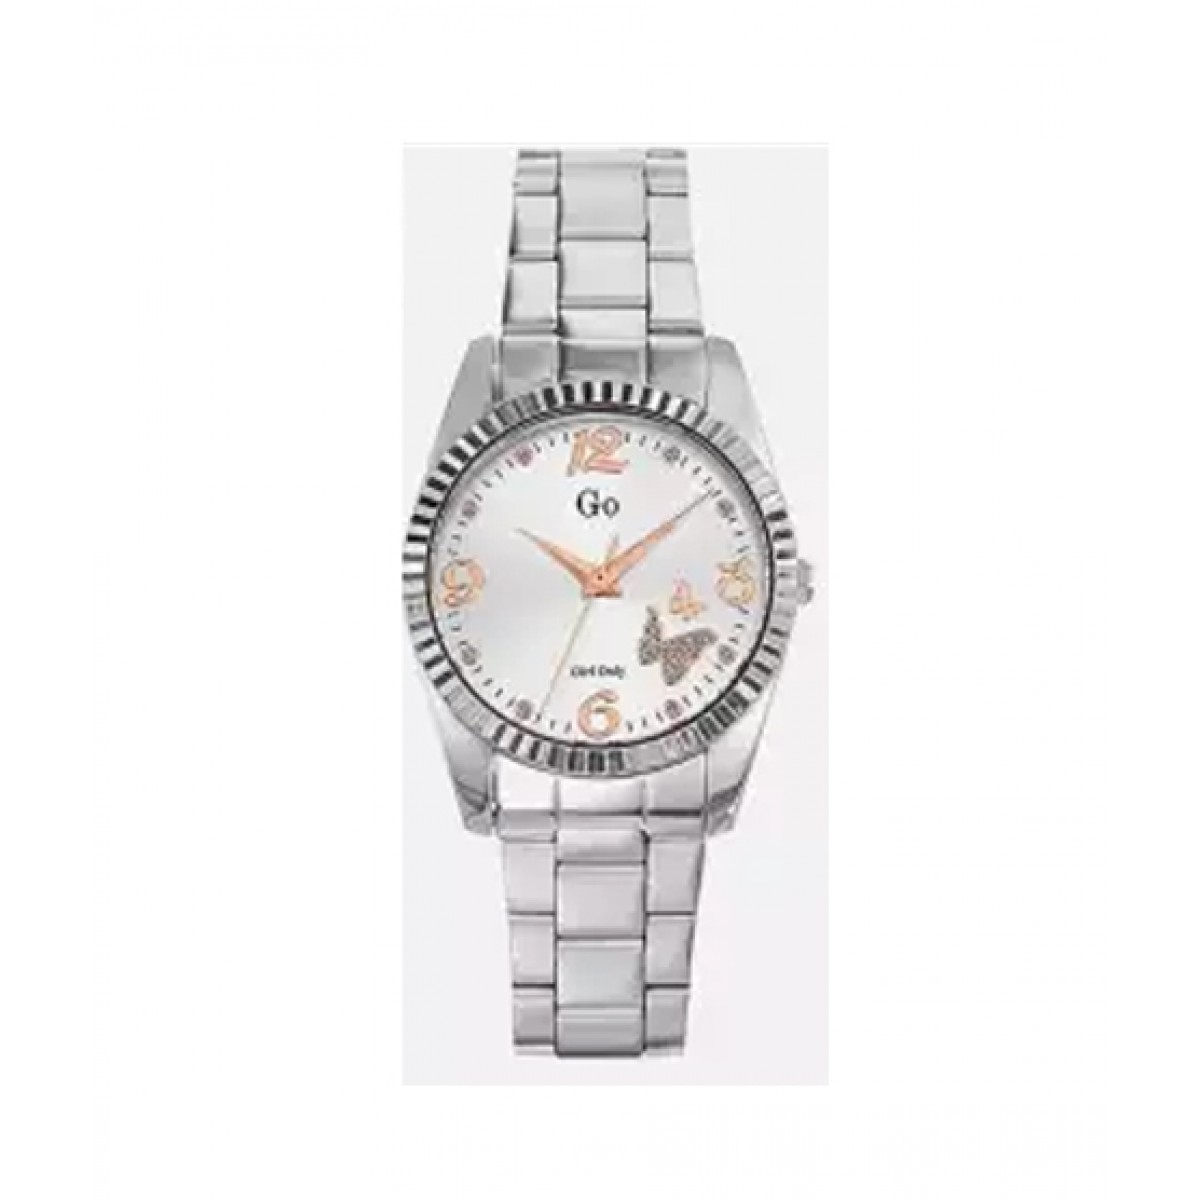 Go Girl Only Sunray Dial Glitter Women's Watch Silver (694923)